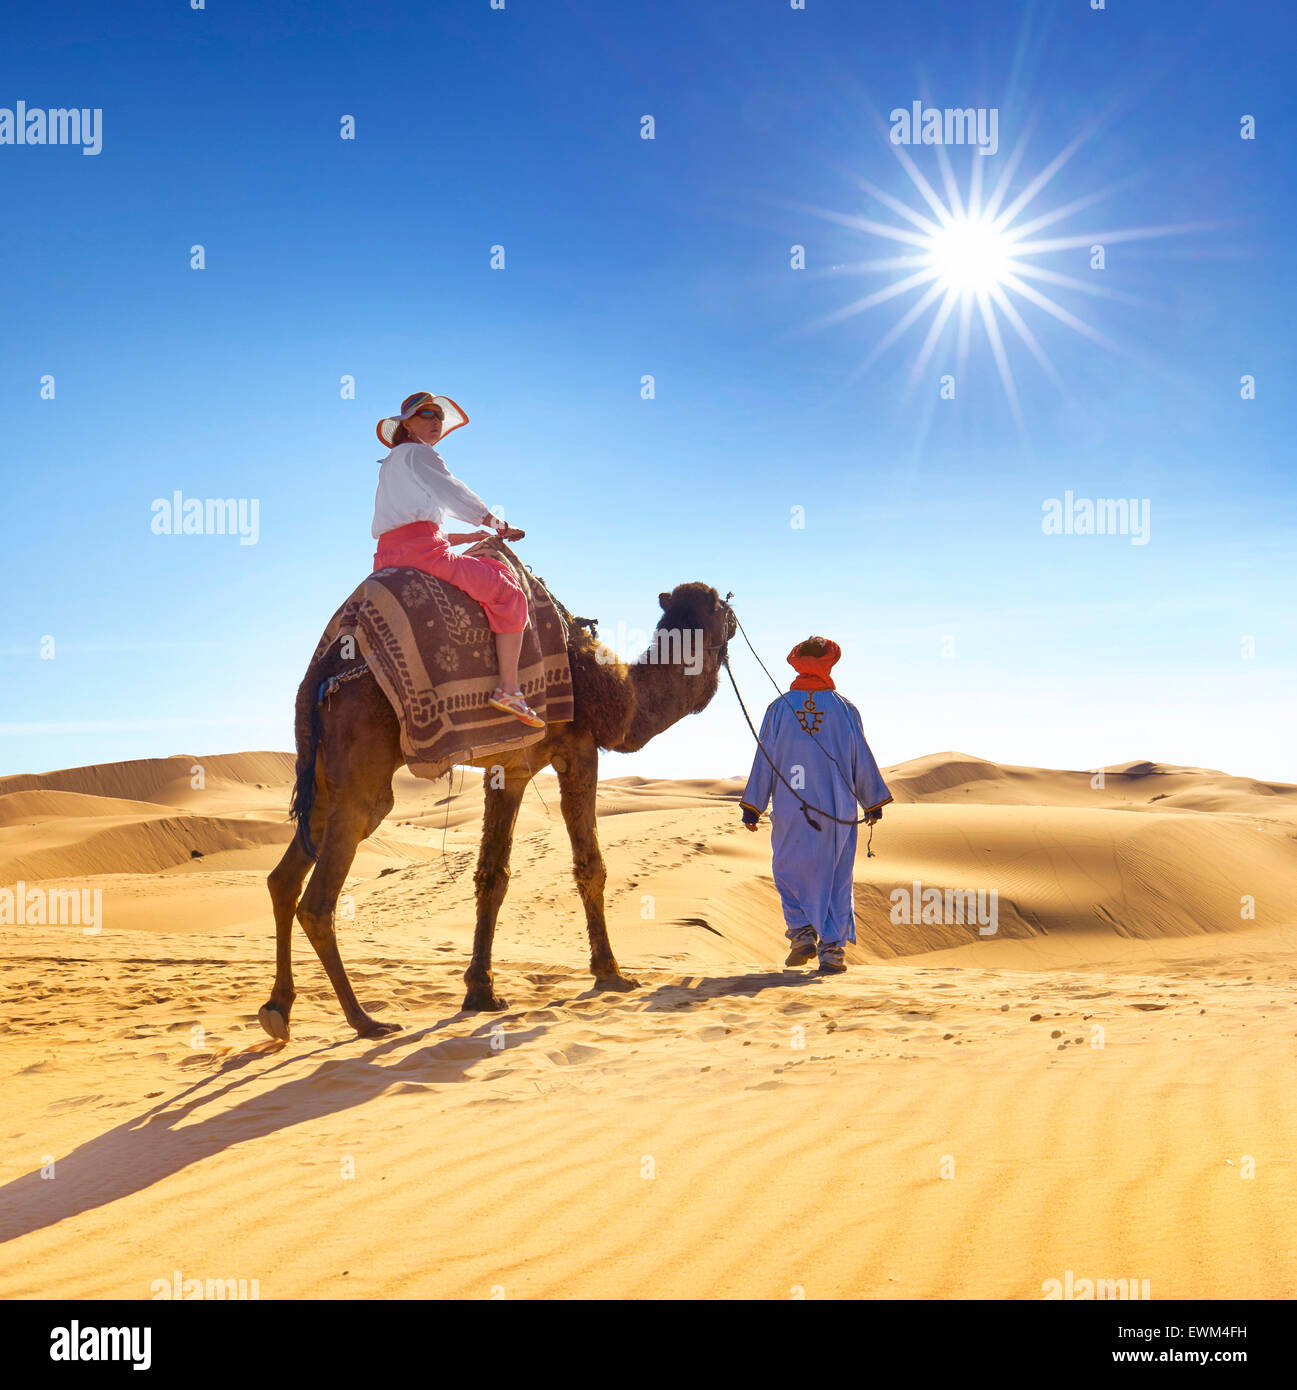 Tourist on camel ride, Erg Chebbi desert near Merzouga, Sahara dunes, Morocco - Stock Image